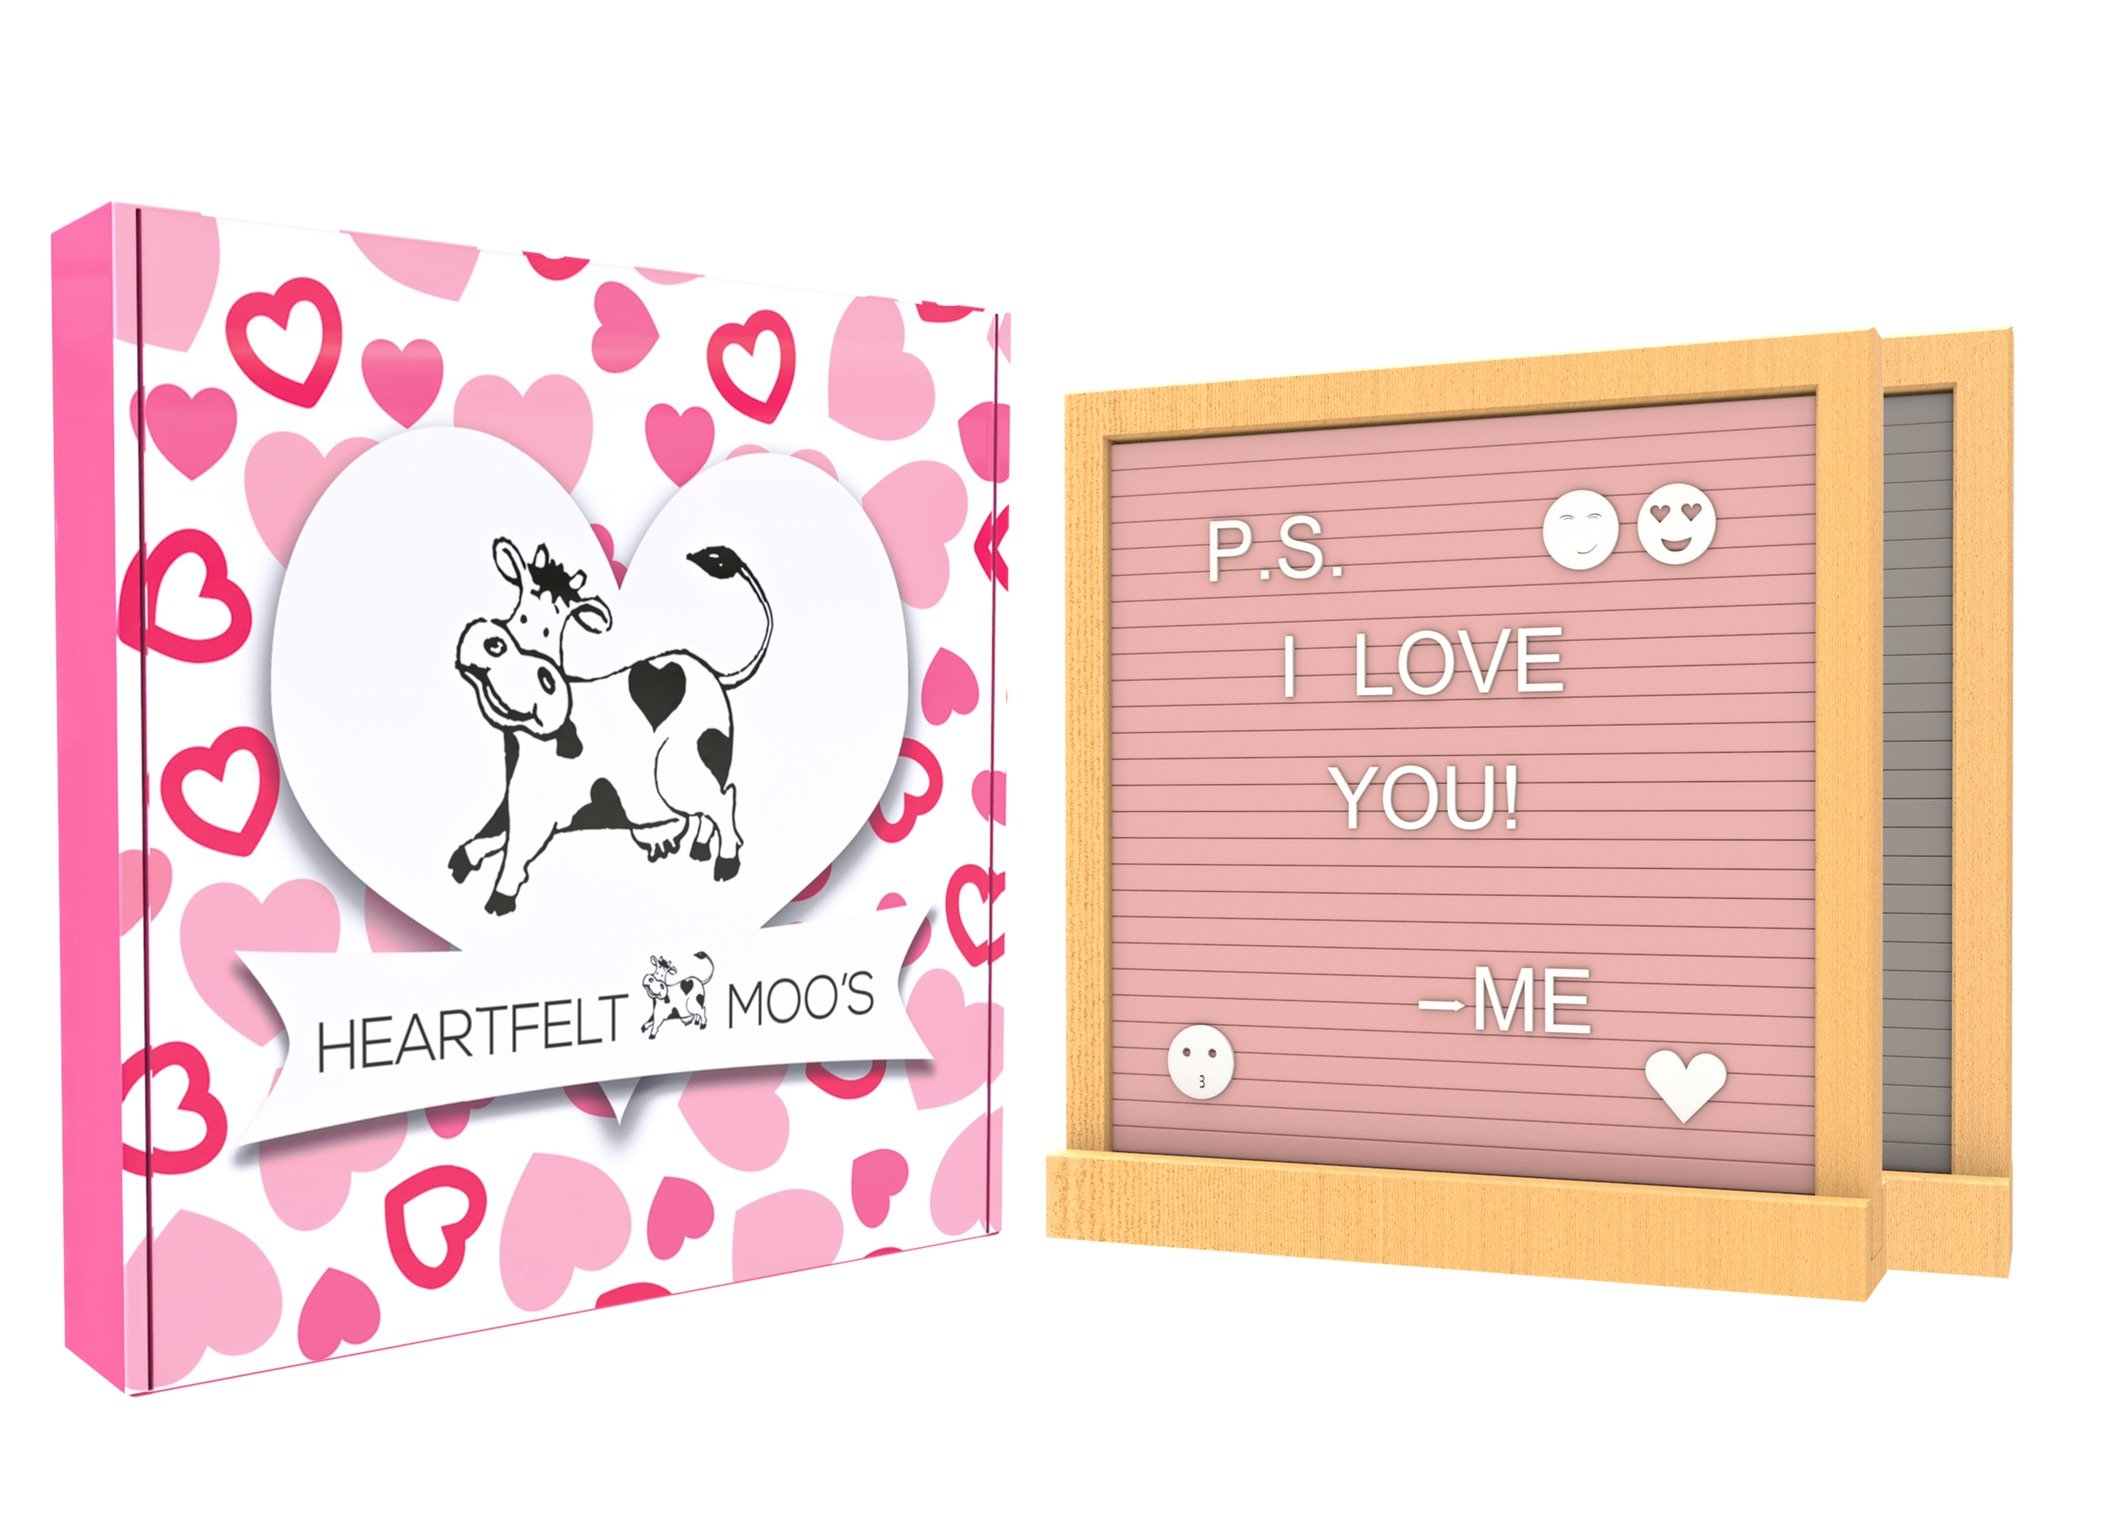 Felt Board Letter Board Double Sided (Pink & Grey) with 720 Letters, Numbers, and Emojis! Beautiful Gift Box Included! by Heartfelt Moo's